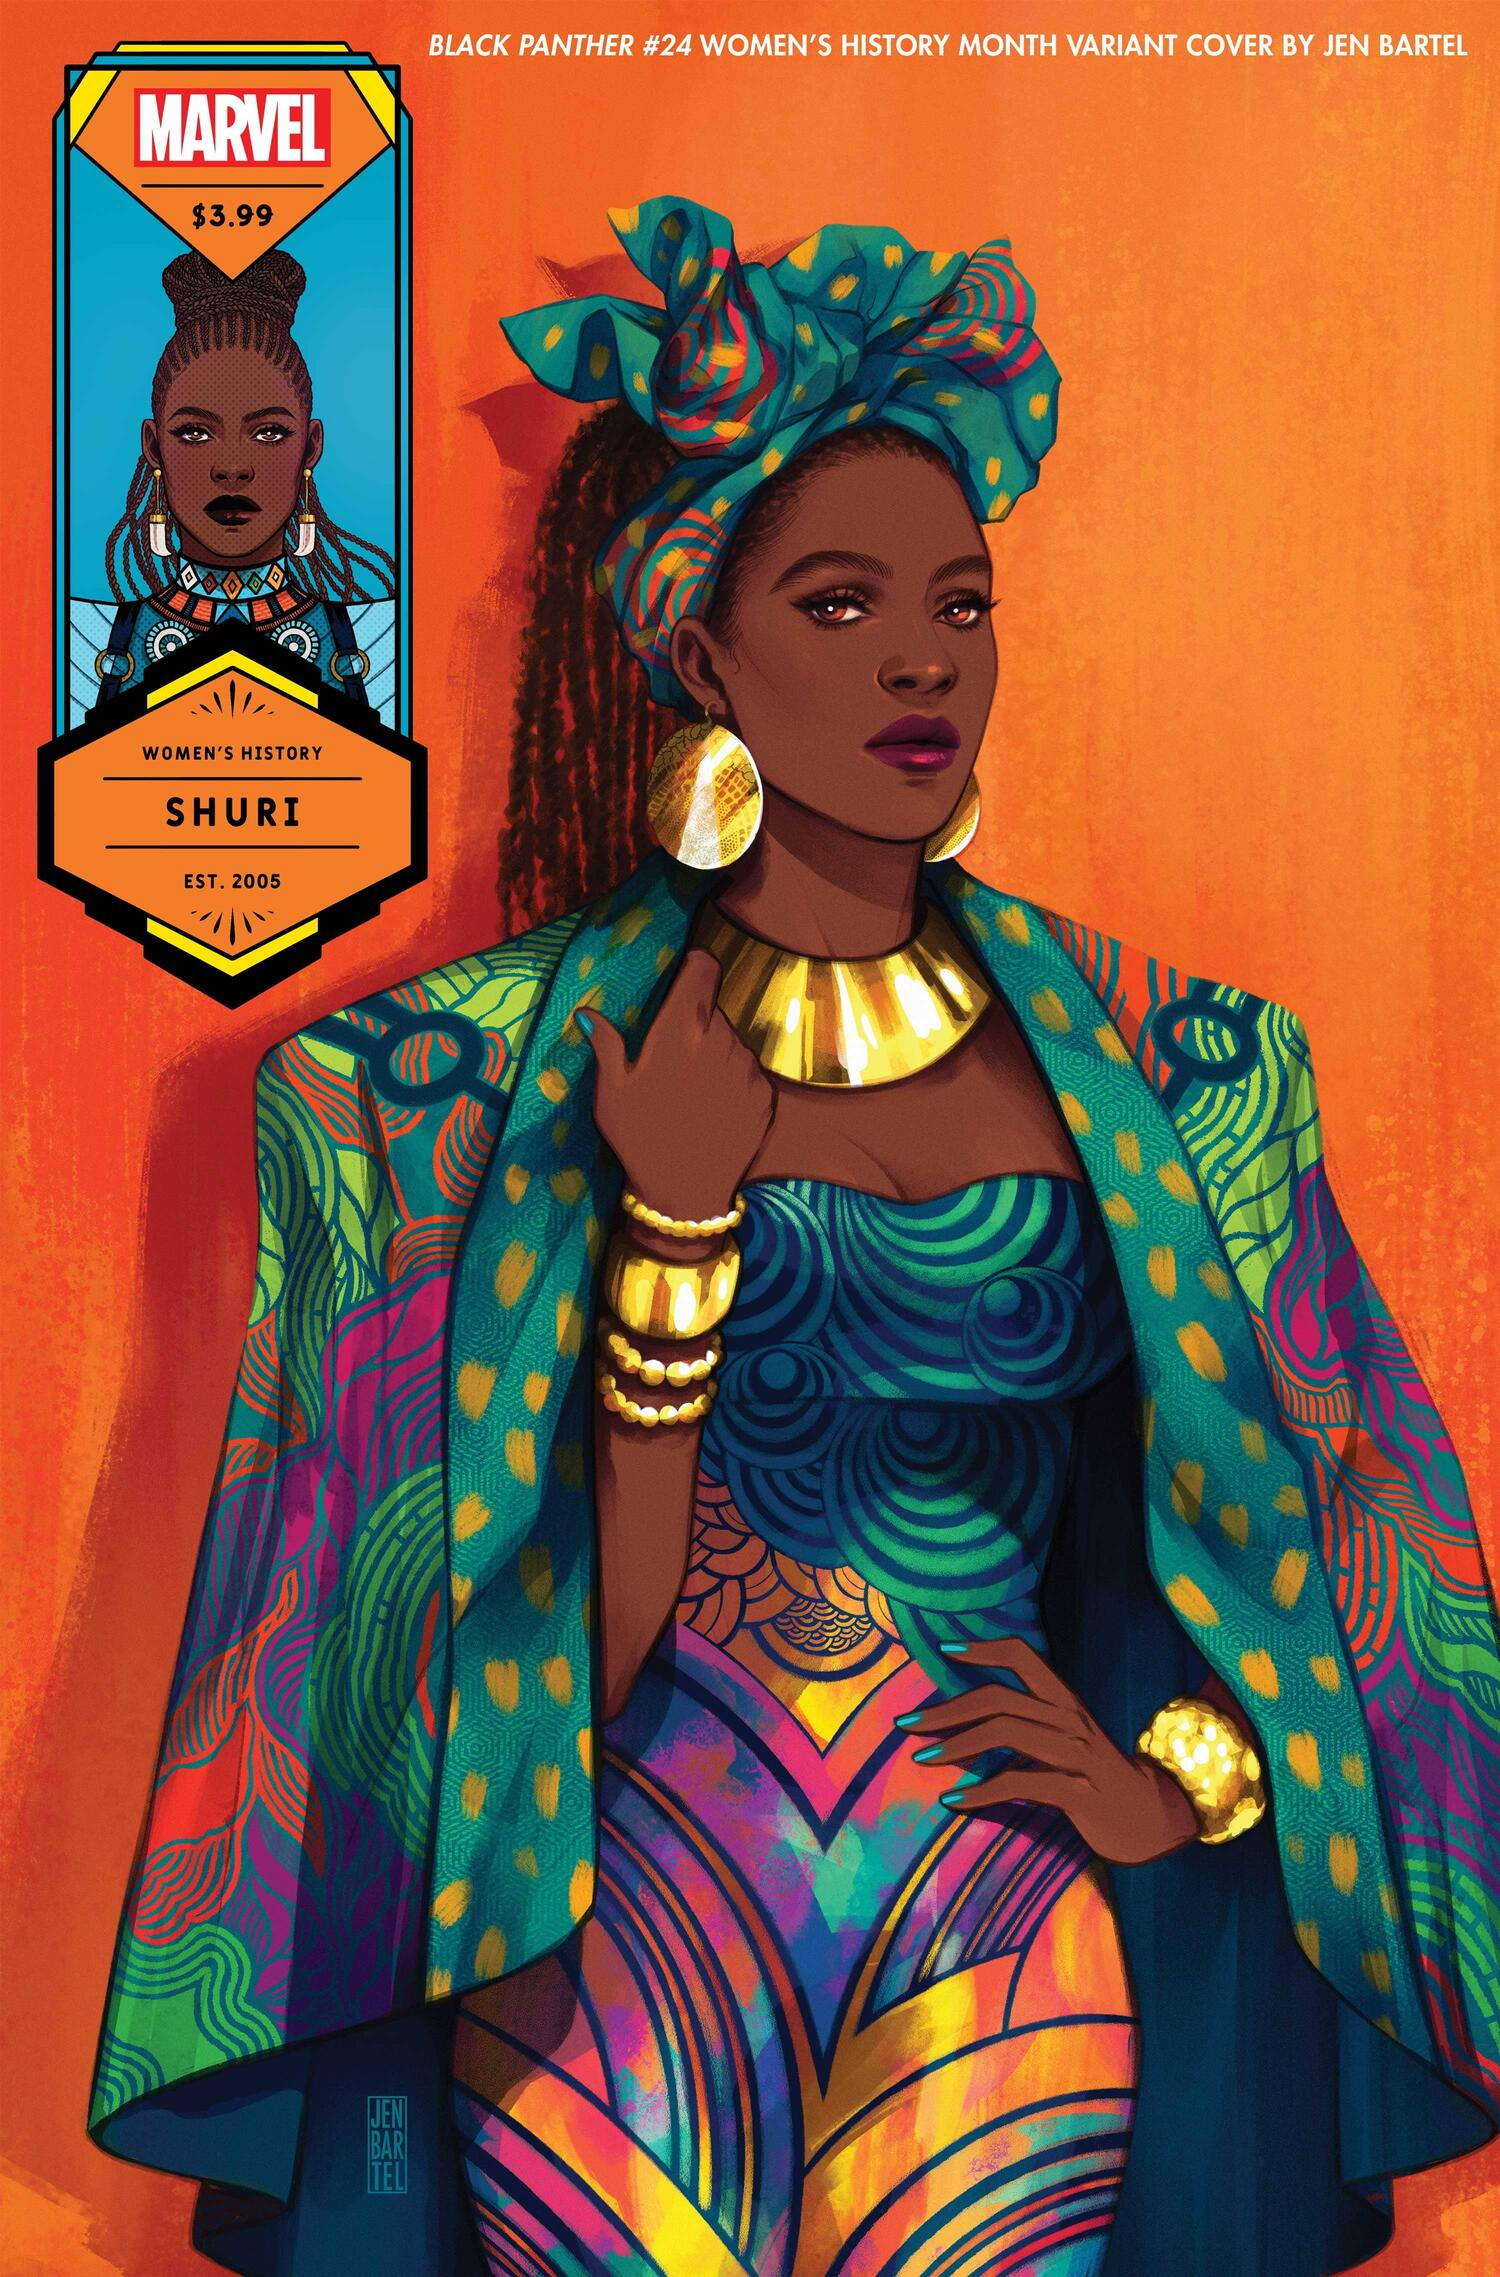 Black Panther 24 Women's History Month Variant